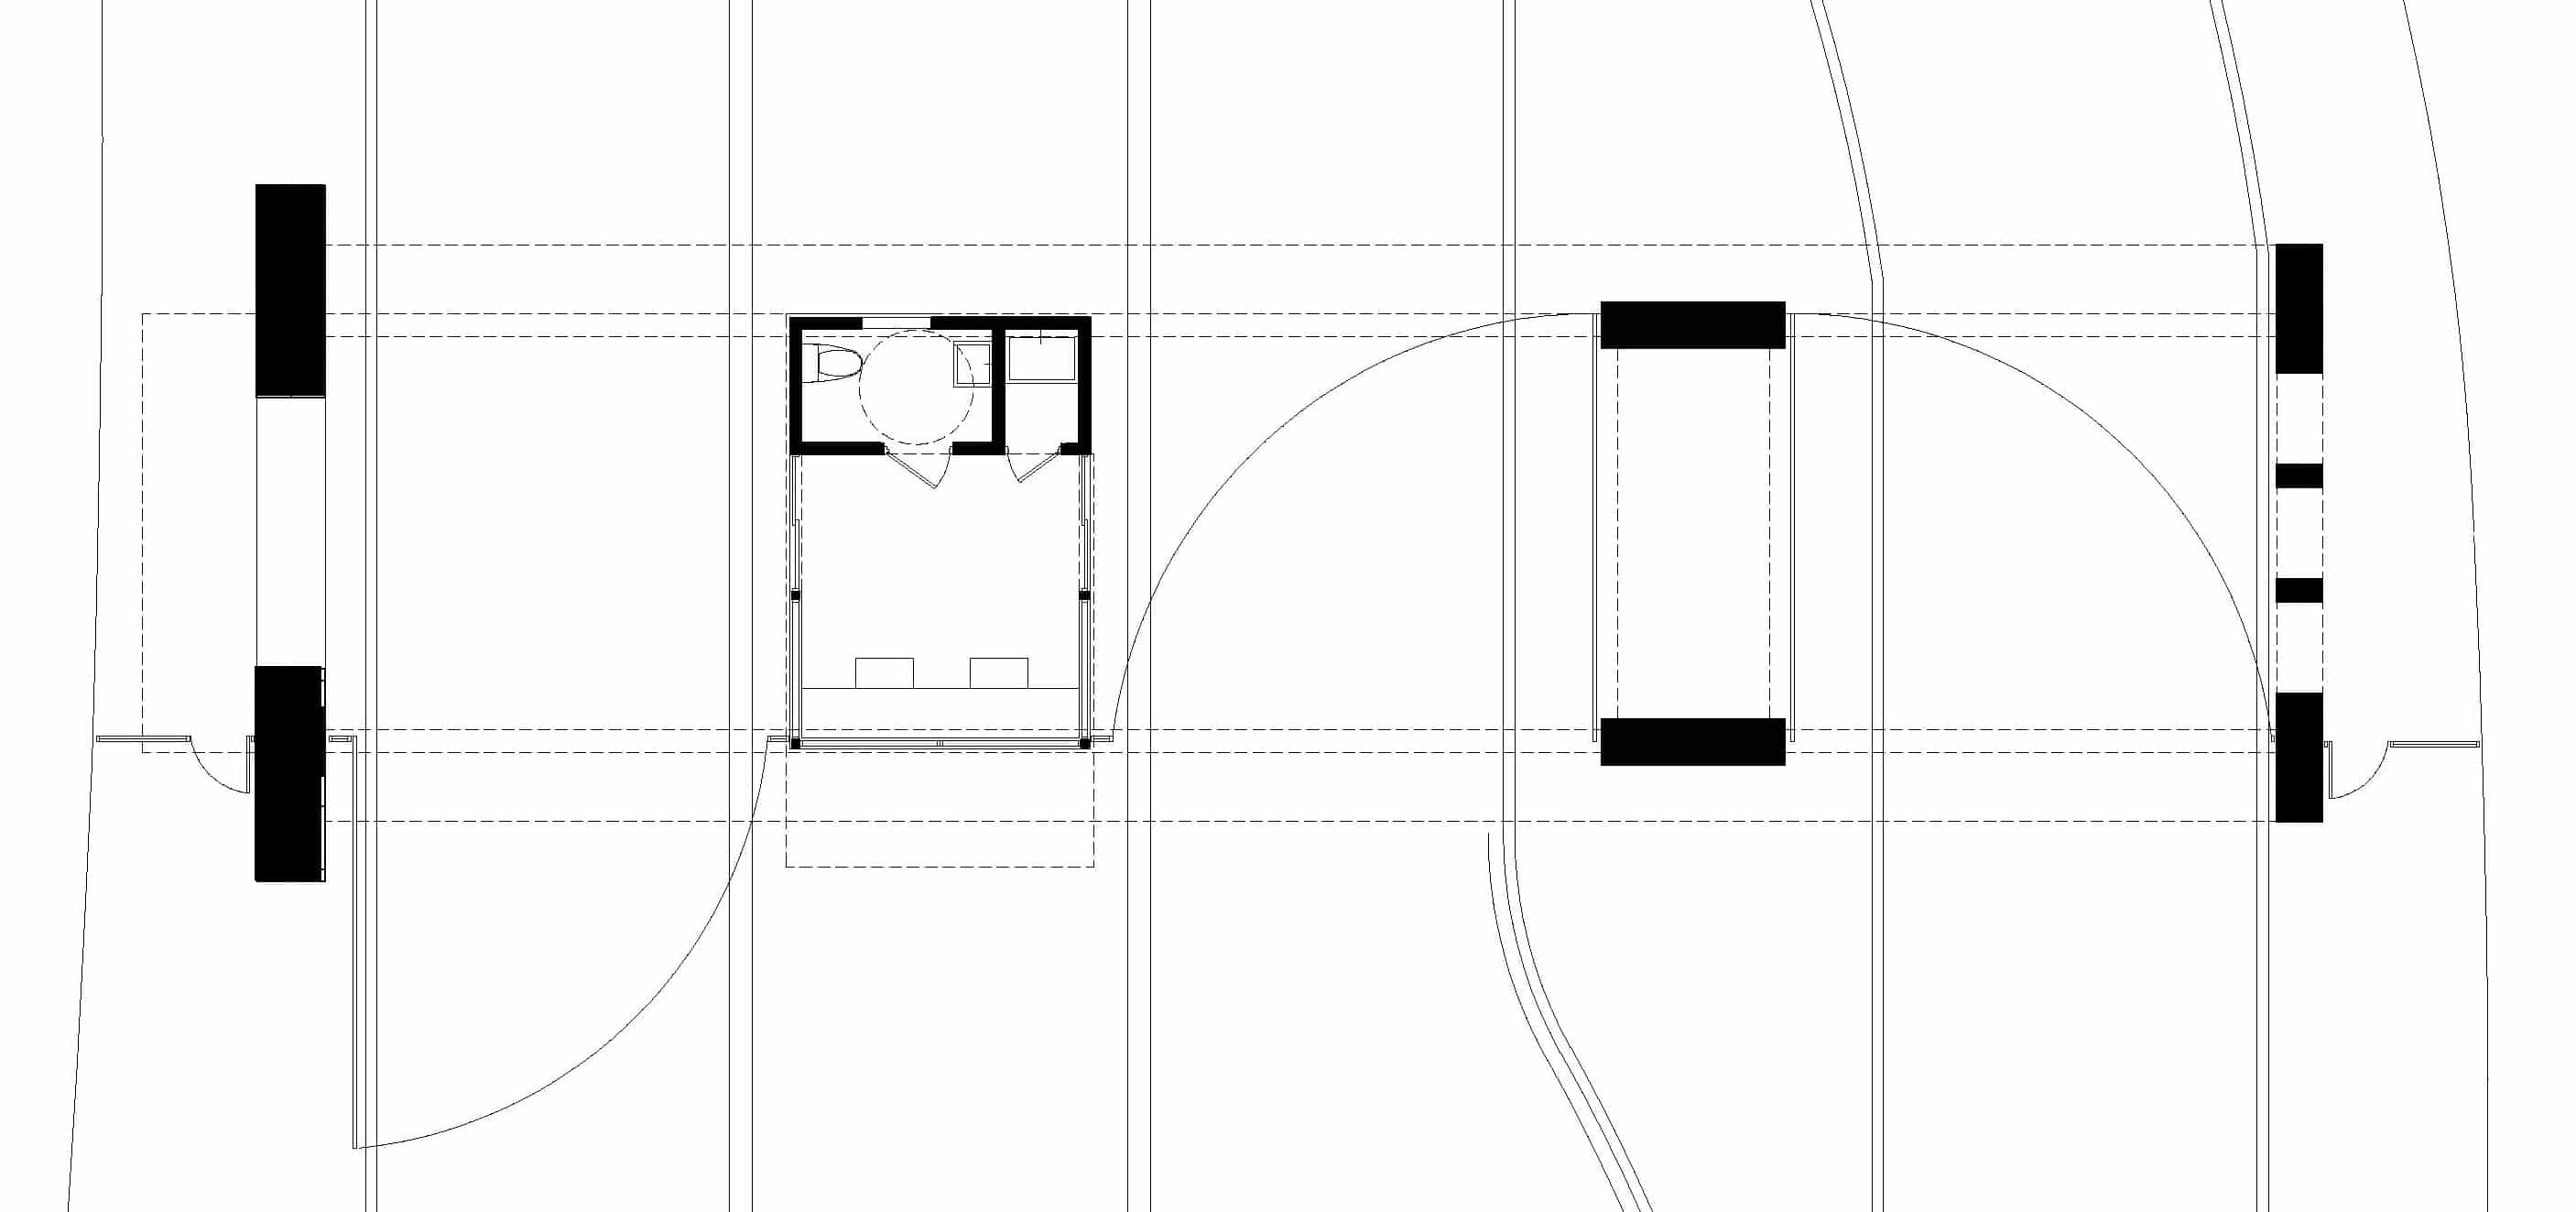 9-5-19-Entrance-Guard-House-at-Riviera-Plan-copy